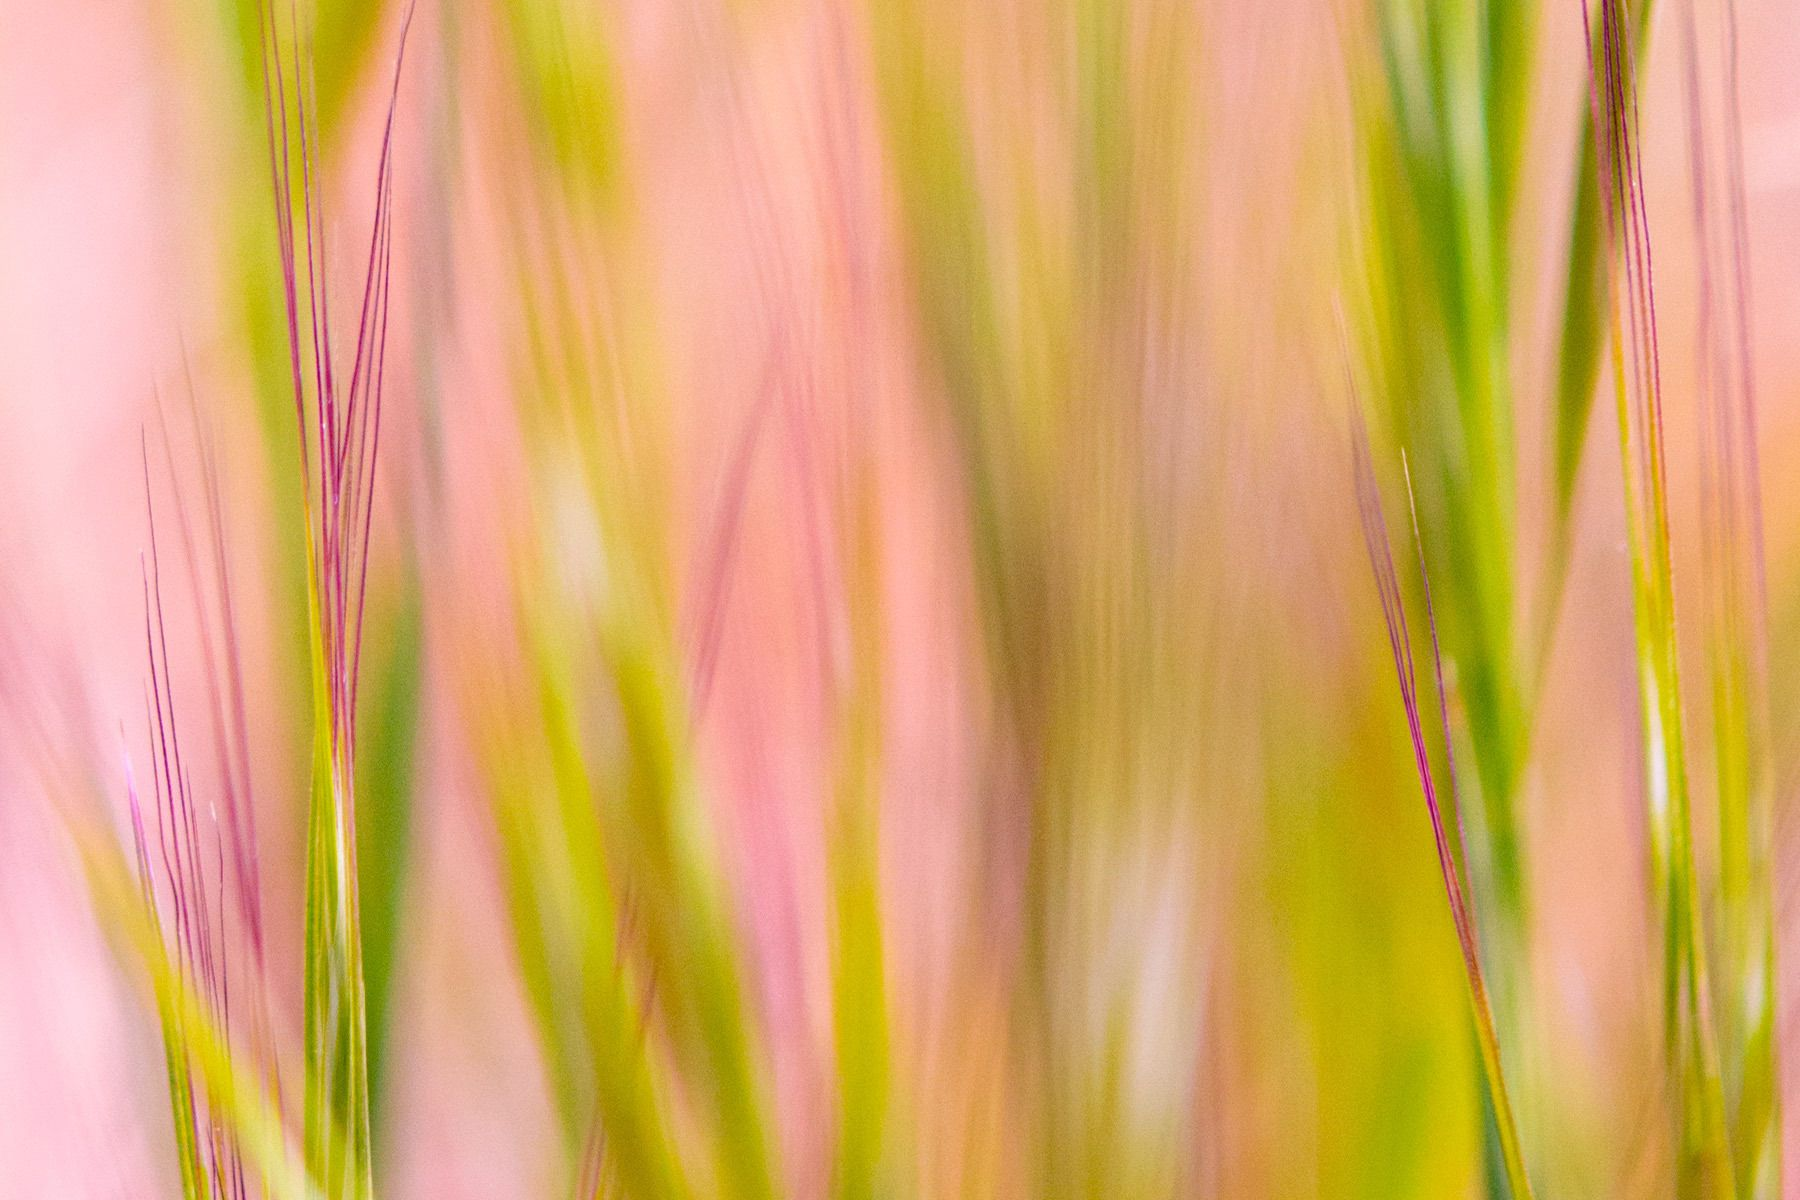 Abstract grass in pink and green